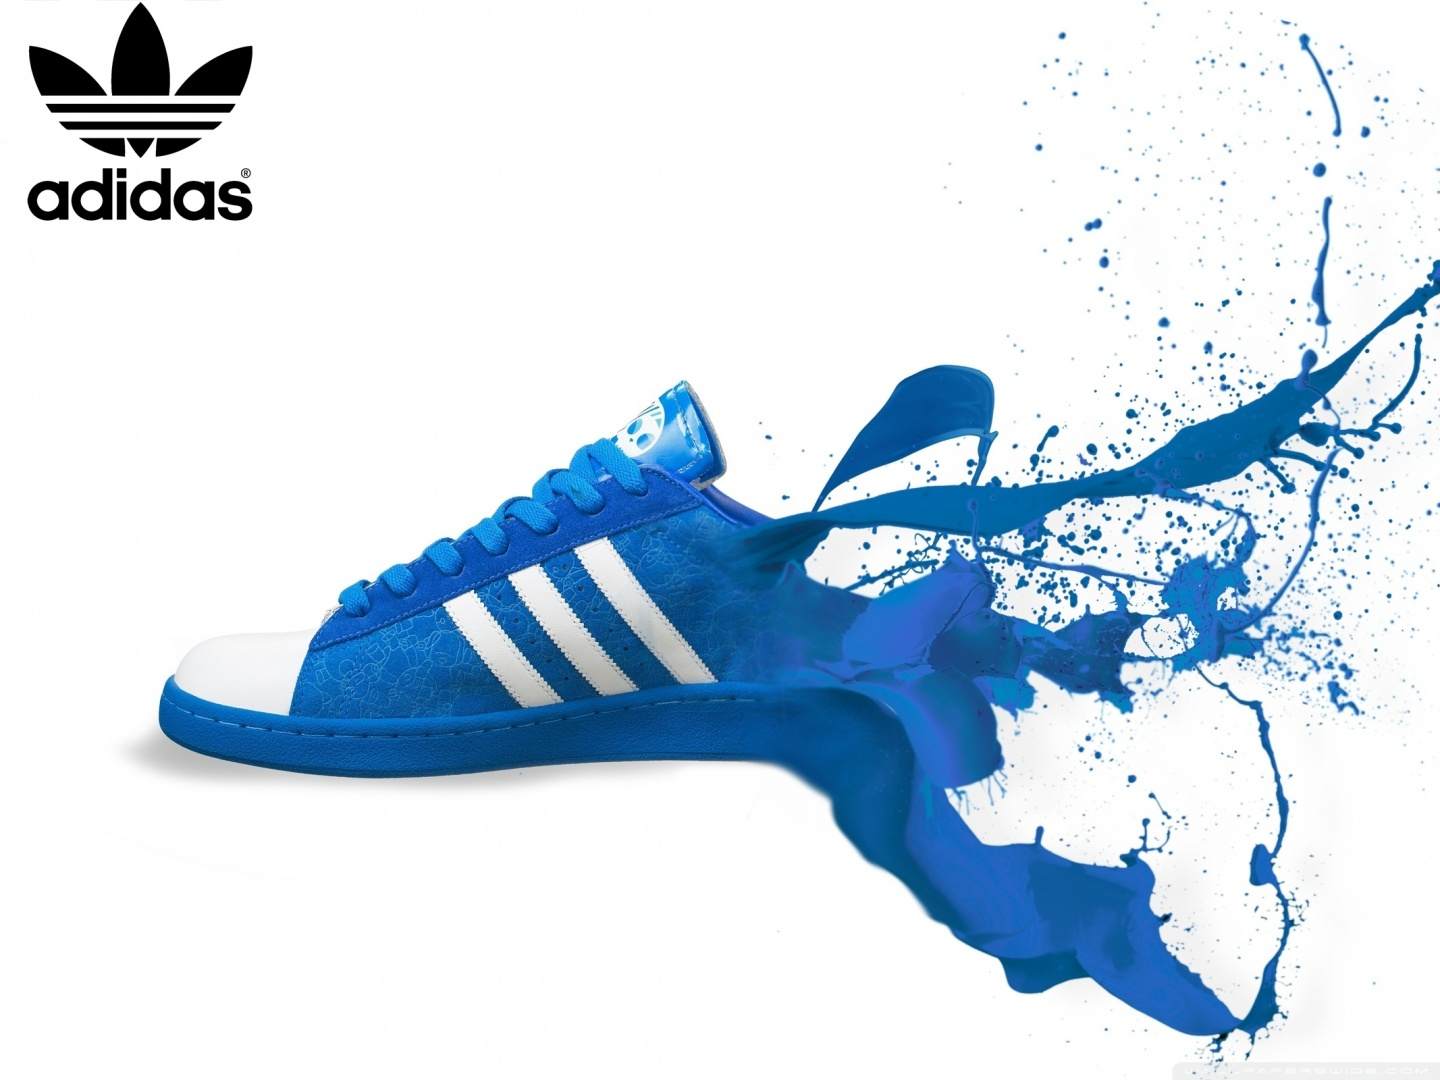 Free Download Adidas Shoe Ad 4k Hd Desktop Wallpaper For 4k Ultra Hd Tv 1440x1080 For Your Desktop Mobile Tablet Explore 27 Adidas Superstar Wallpapers Adidas Superstar Wallpapers Wwe